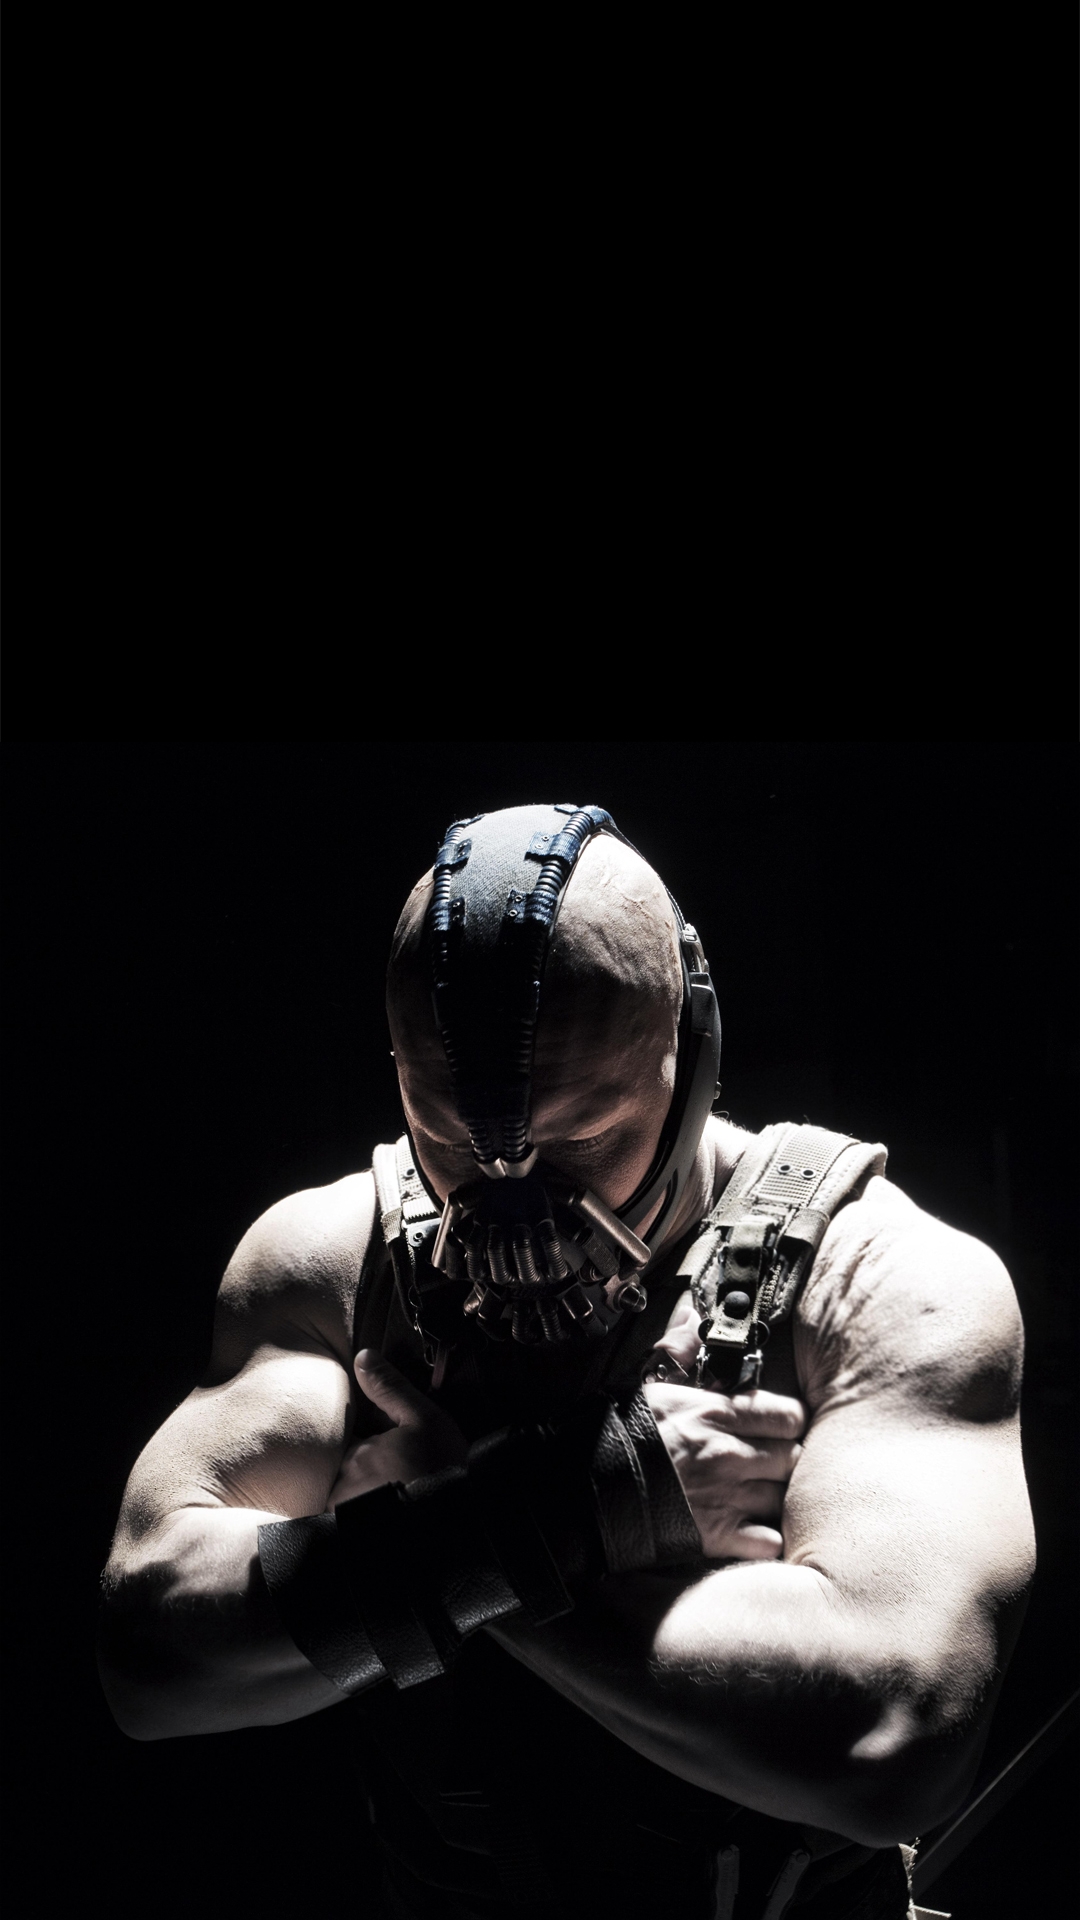 Bane The Dark Knight Rises Best Htc One Wallpapers Free And Easy